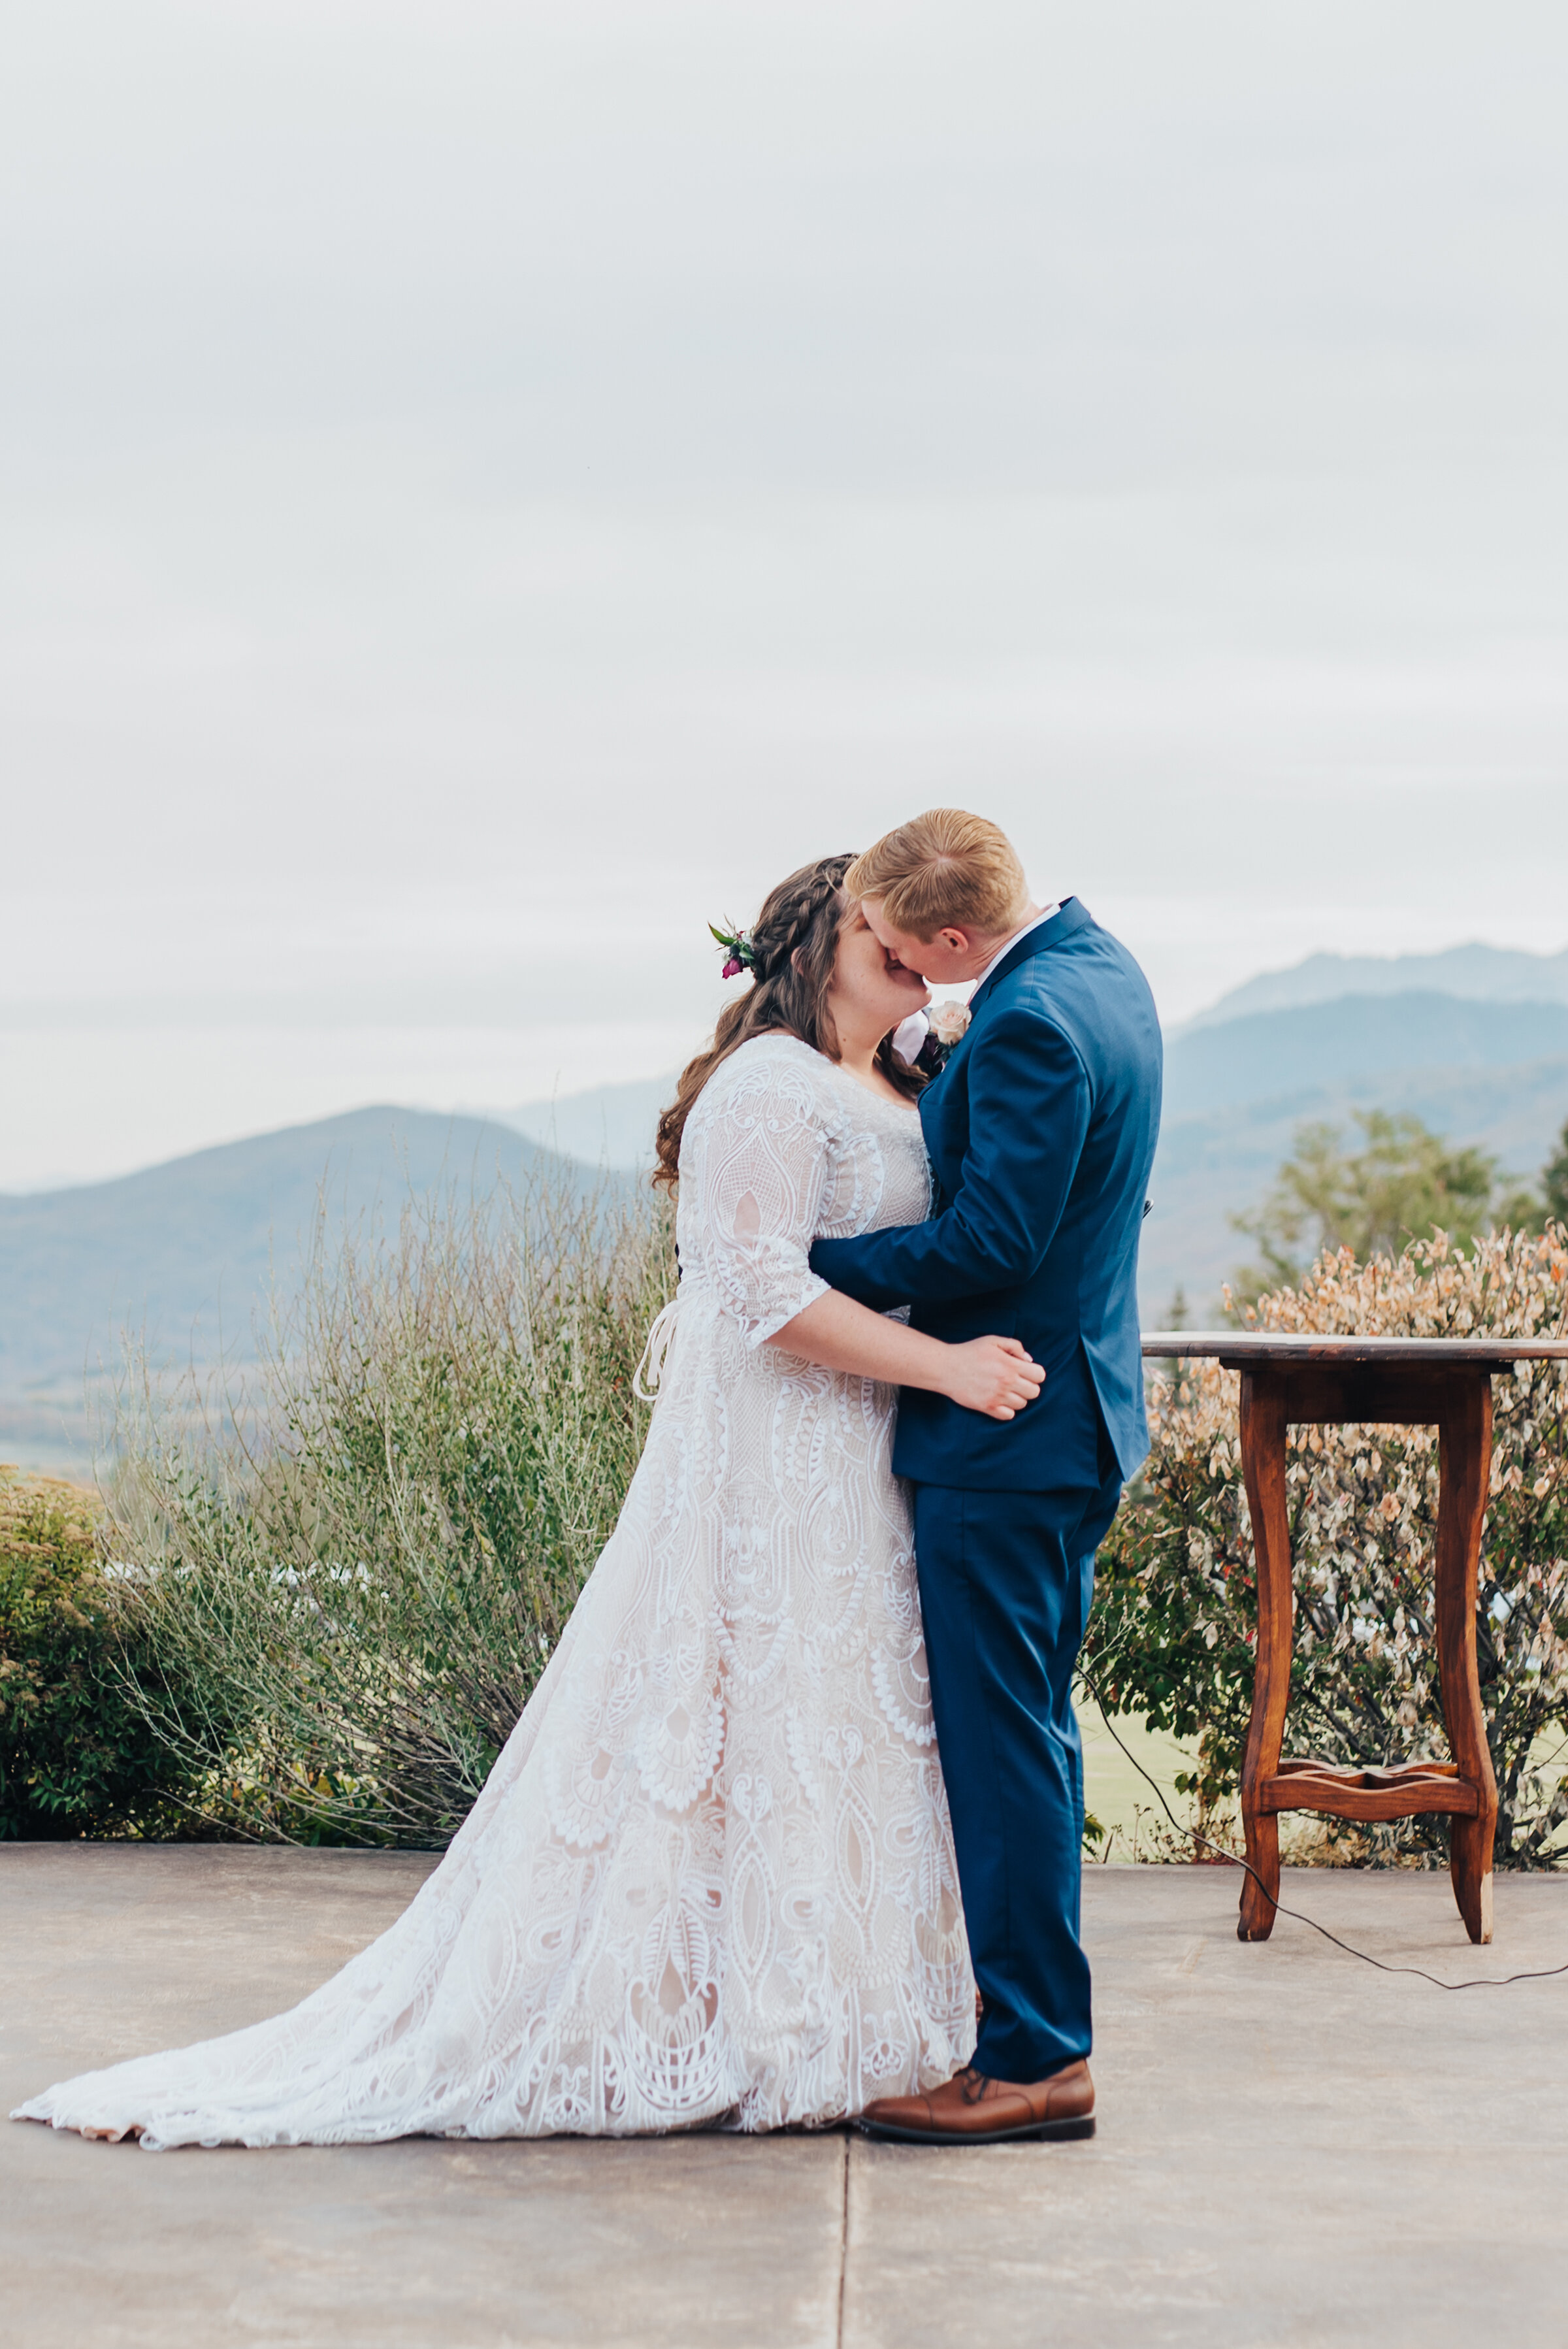 First kiss as husband and wife in the mountains of northern Utah captured by Kristi Alyse photography. First kiss husband and wife bride and groom mountain Logan Utah wedding ceremony location inspiration wedding photography unique meaningful moments captured #weddinginspo #loganutah #brideandgroom #utahbride #utahweddingphotographer #meaningfulmoment #weddingphotography #northernutahwedding #weddinghairstyles #weddingday #bridals